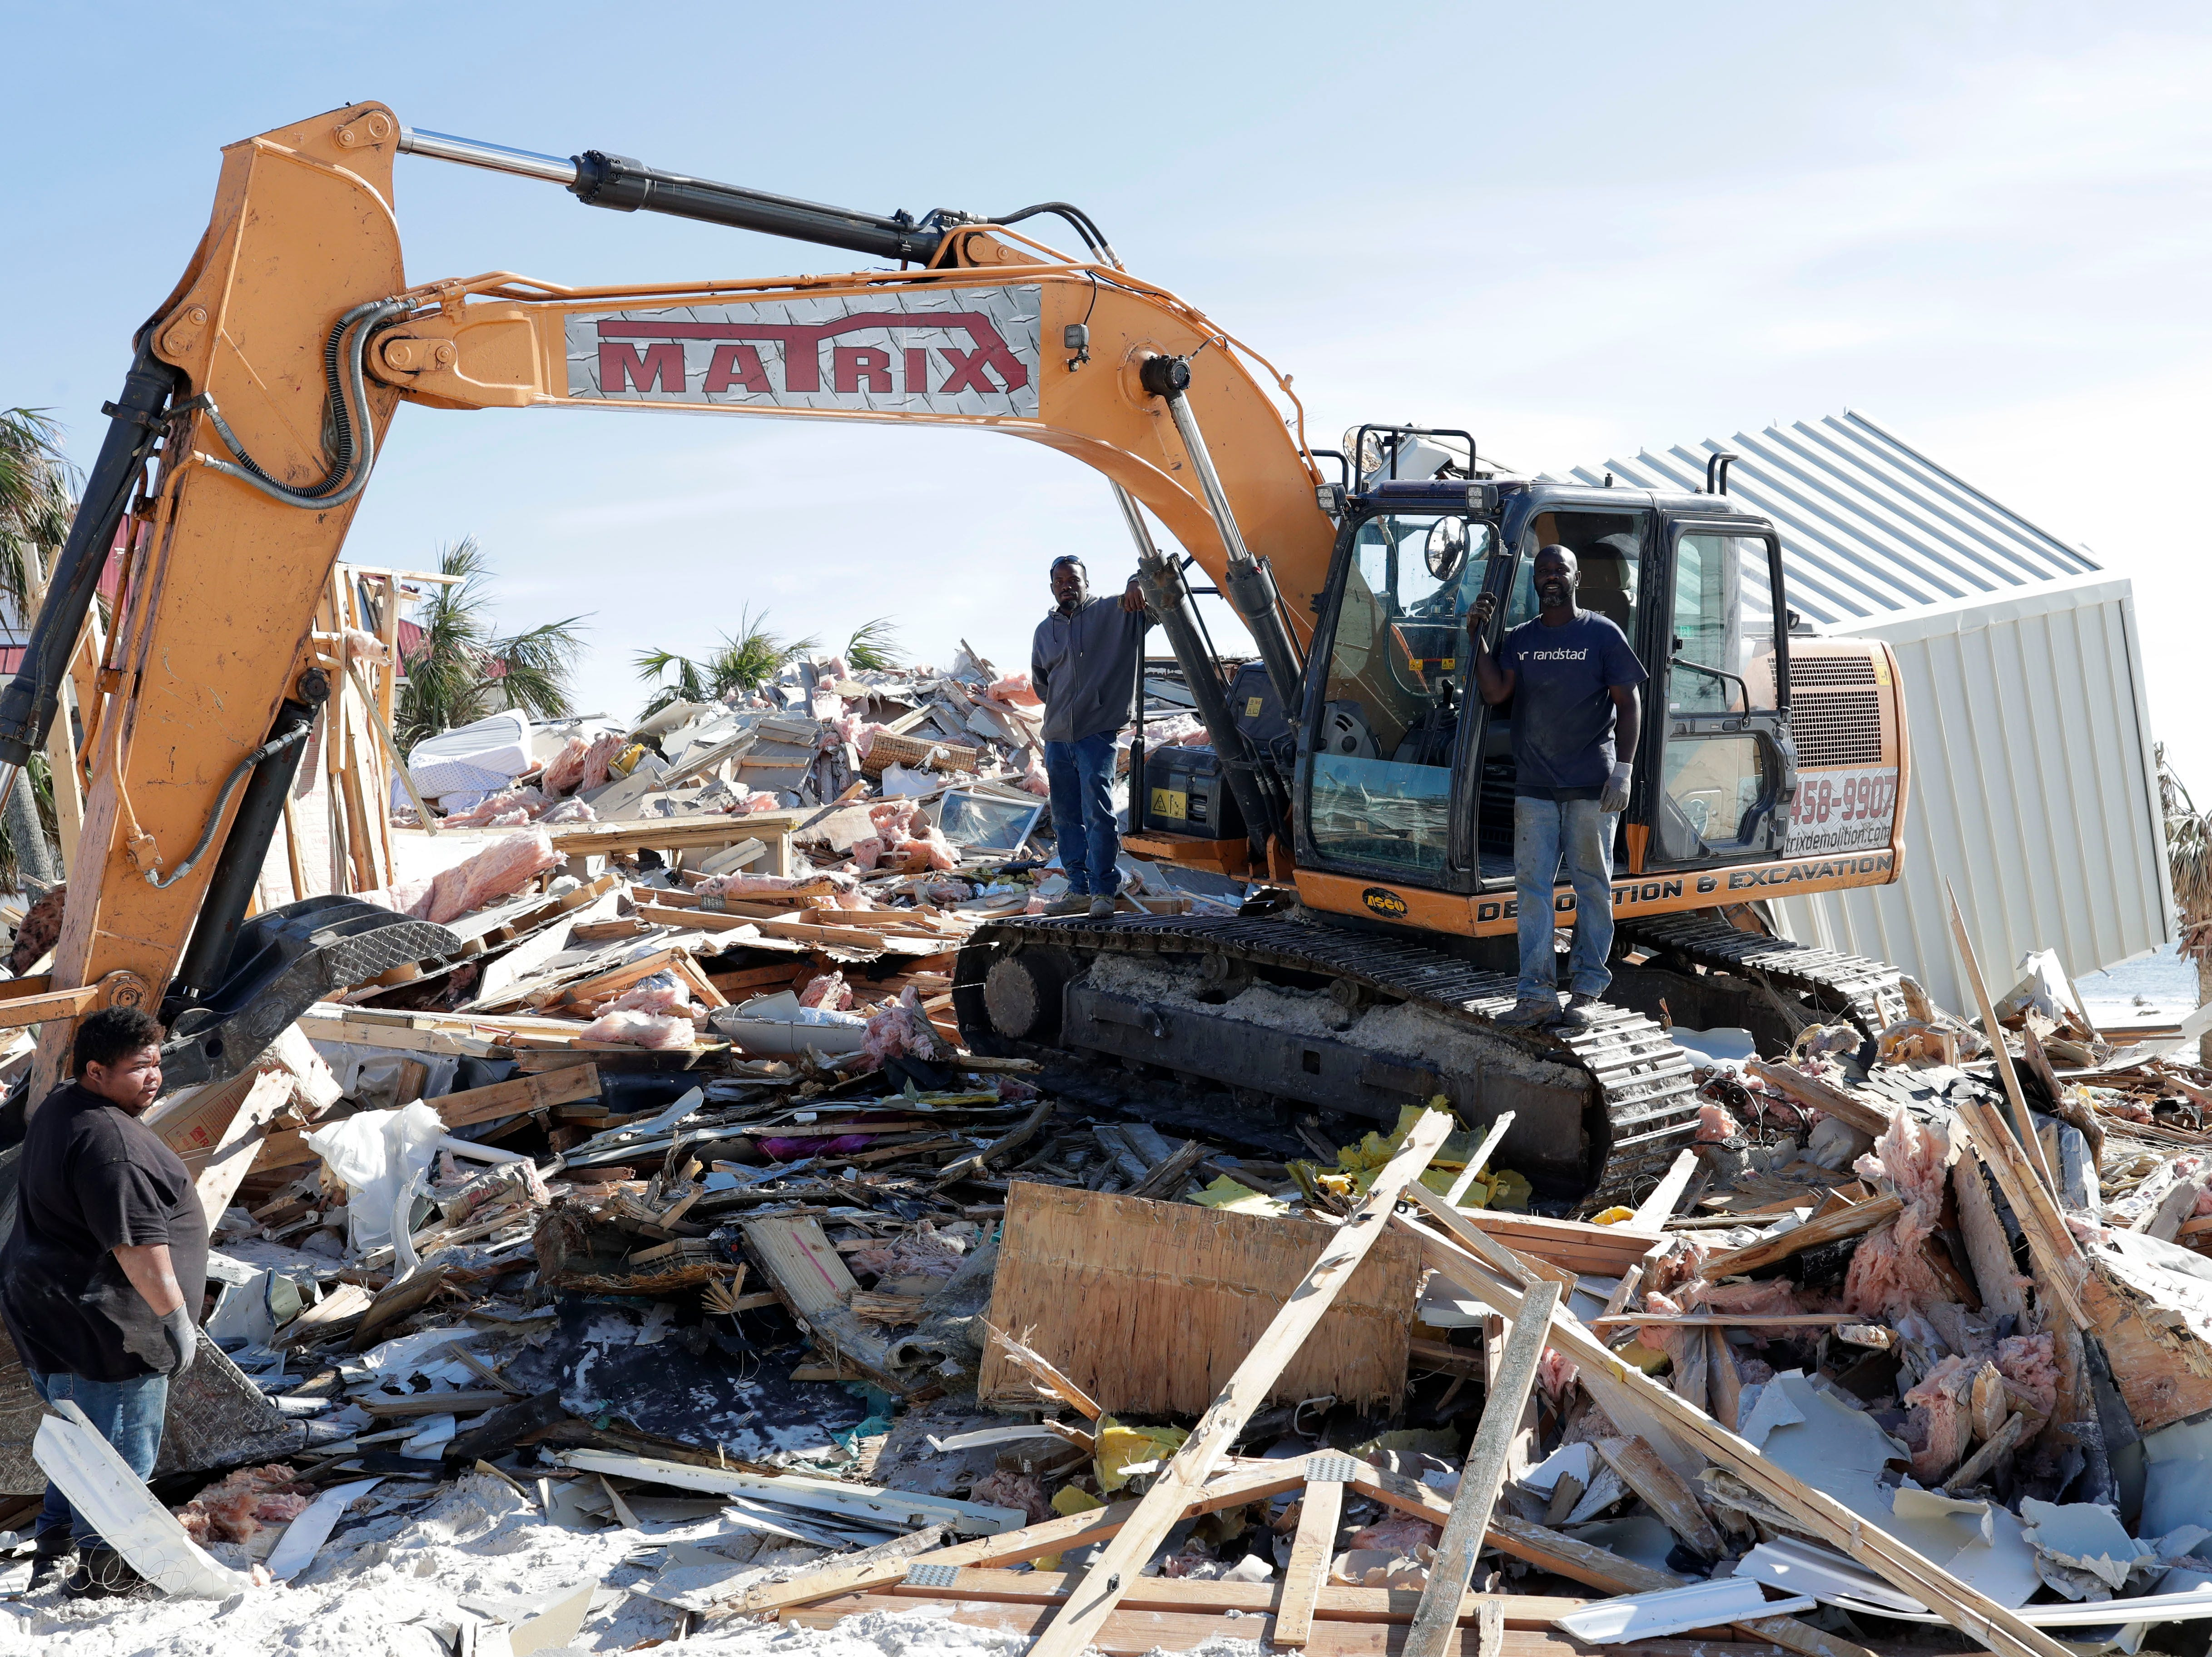 Reggie Twons, left, Ricky Bobby, and Derek Lee, who work for a demolition company stand with a demolition machine which sits on top of what was once a beachfront home in Mexico Beach, Wednesday, Jan. 9, 2019. Hurricane Michael left the panhandle in a total disarray on Oct. 10, 2018.